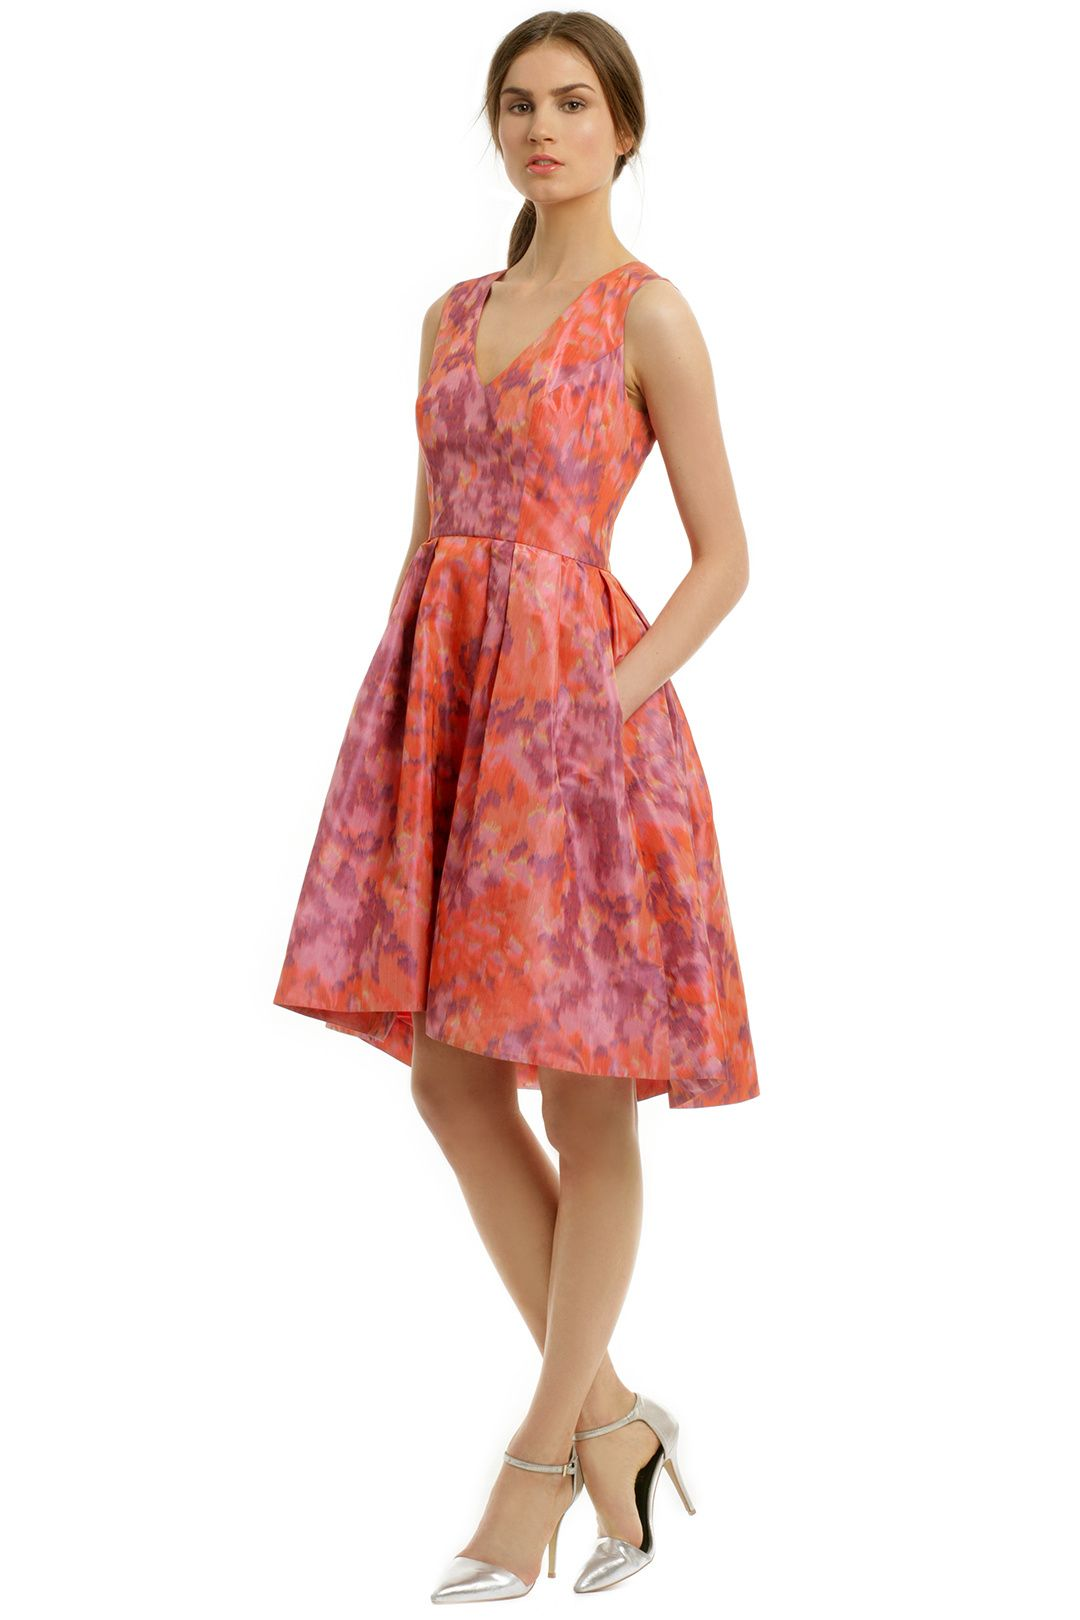 floral dresses wedding guest attire monique lhuillier